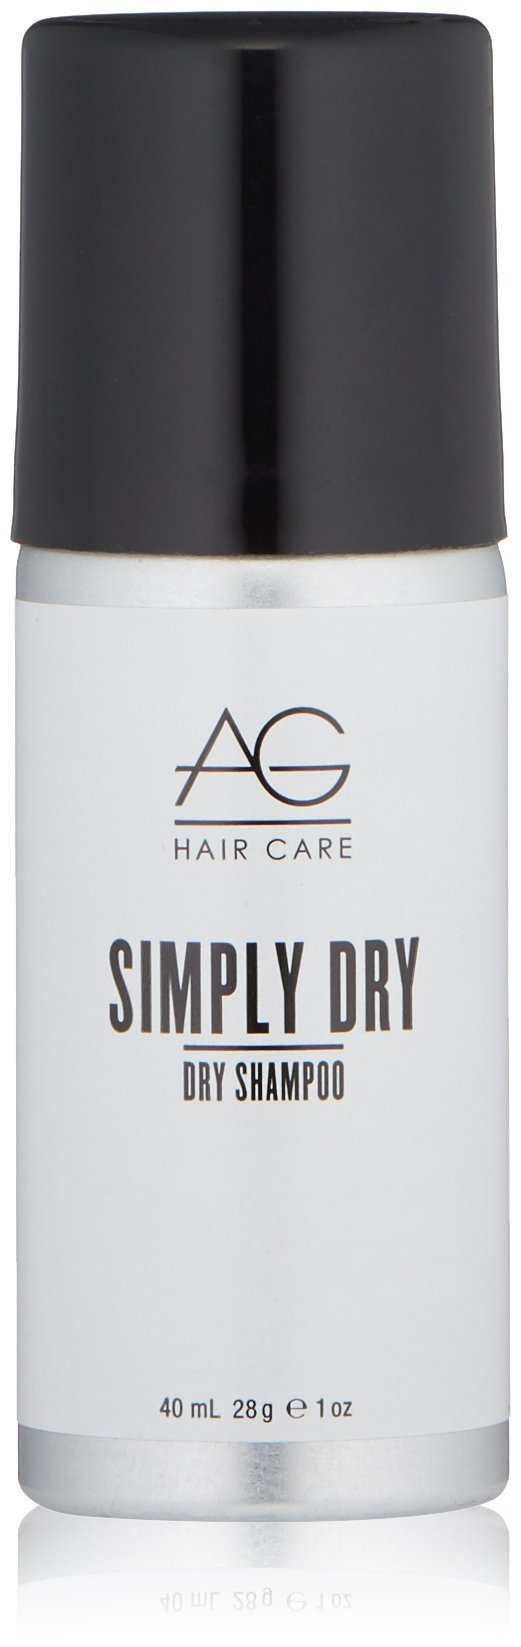 AG Simply Dry style refresher For All Hair Types (37ml)